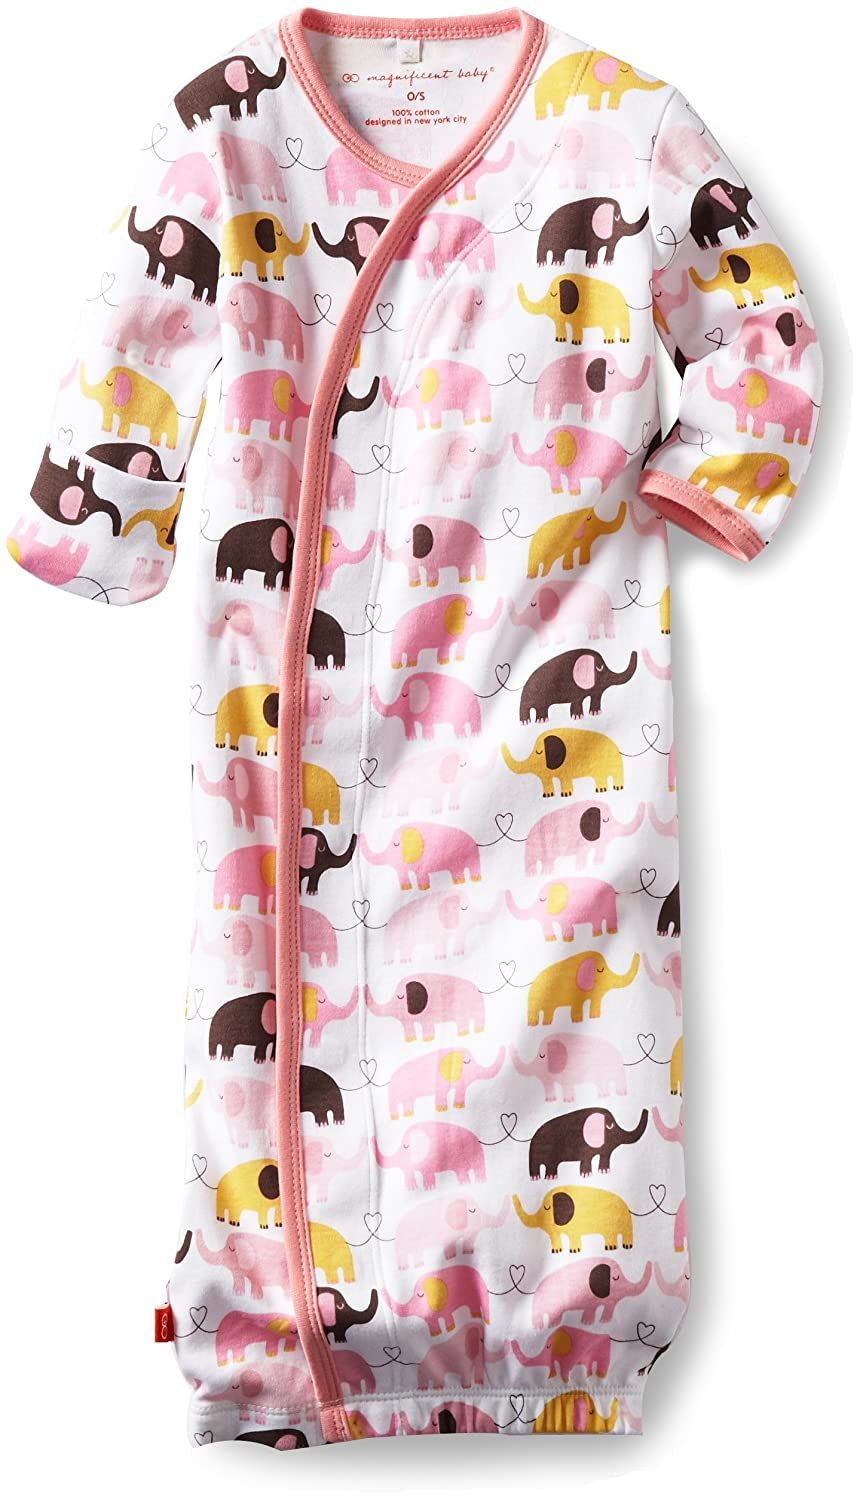 Magnificent Baby Boy's Marrakesh Gown, Elephant, New Born 1130G-OS